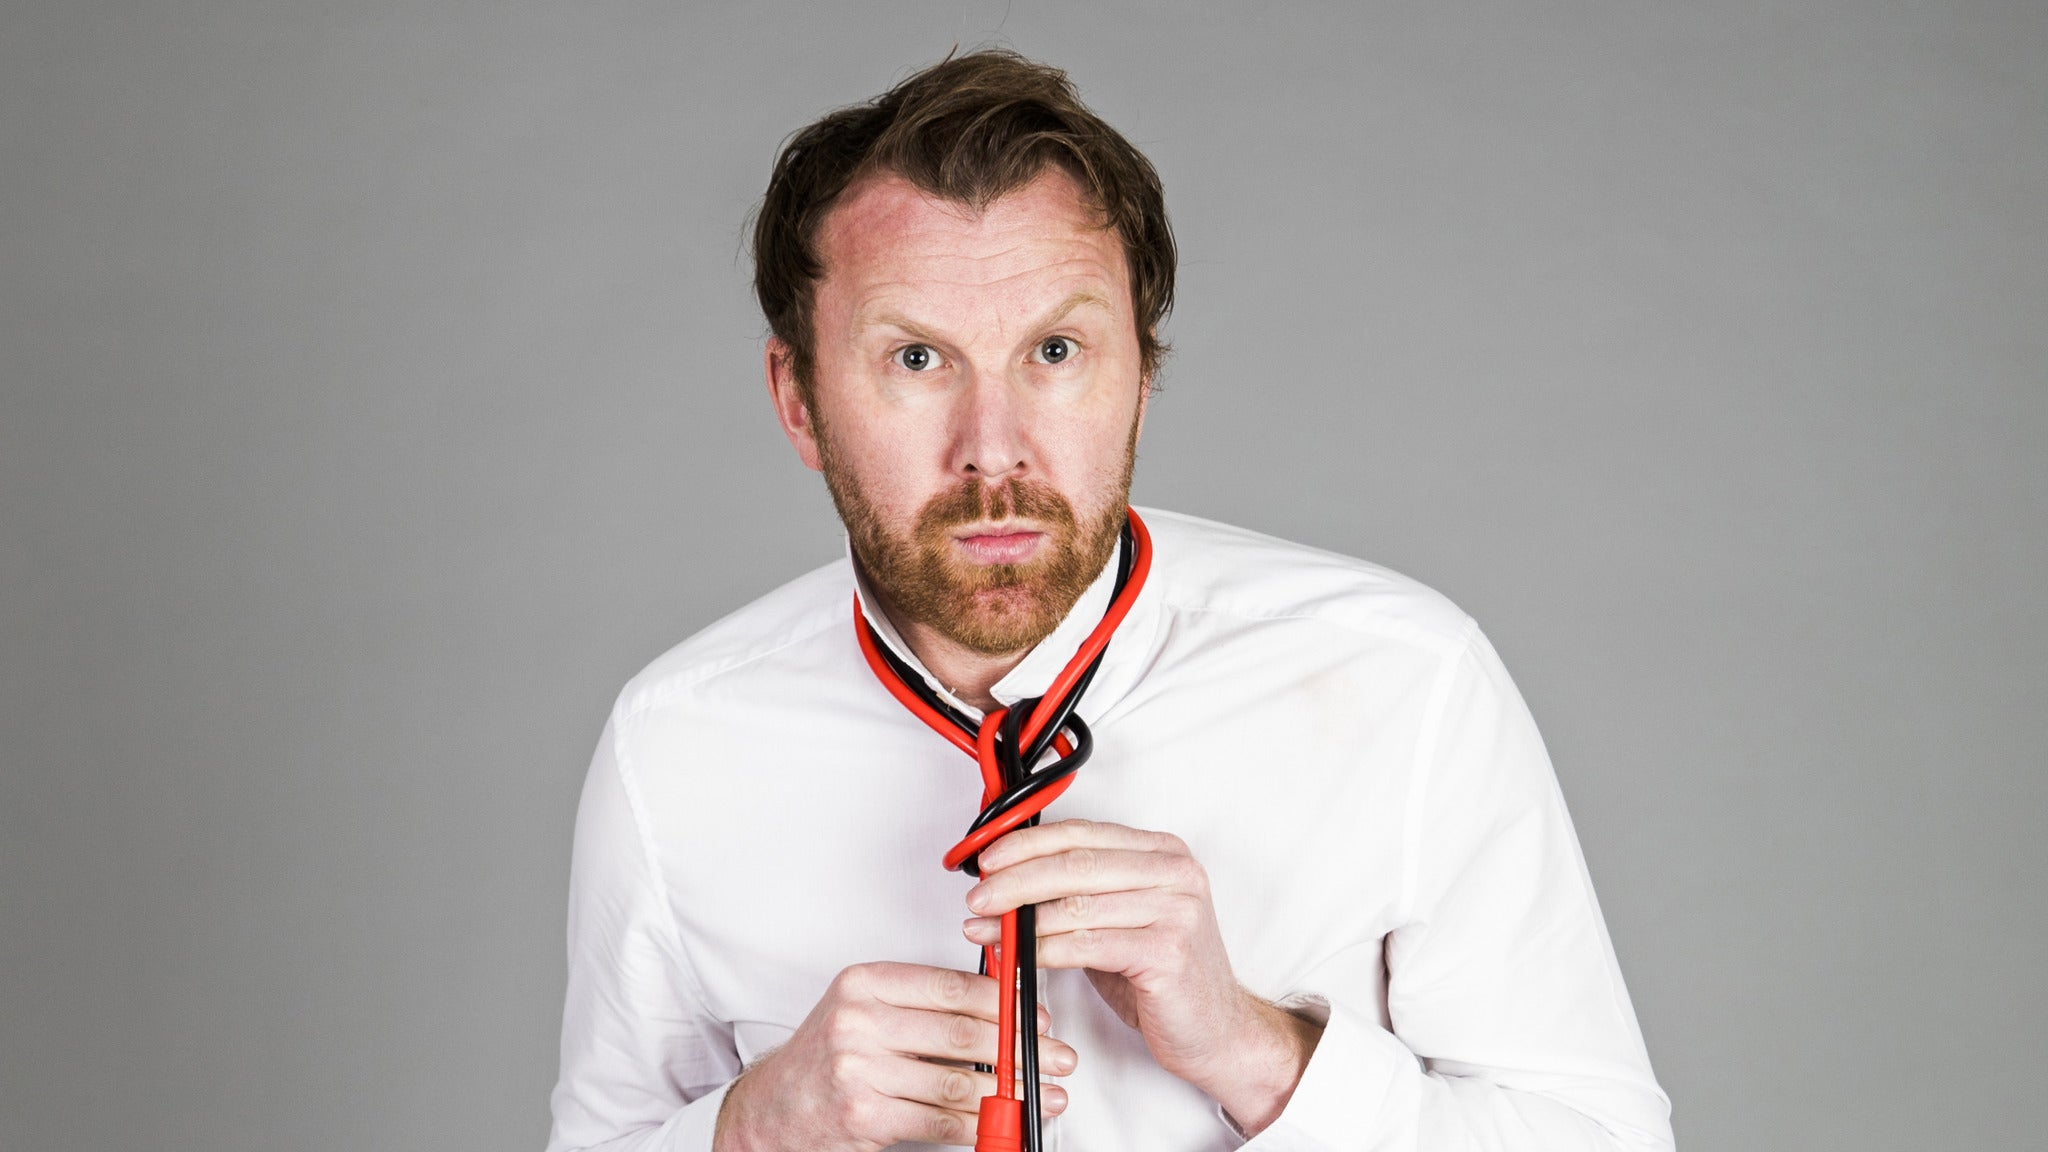 Jason Byrne: You can come in but don't start anything. Seating Plans